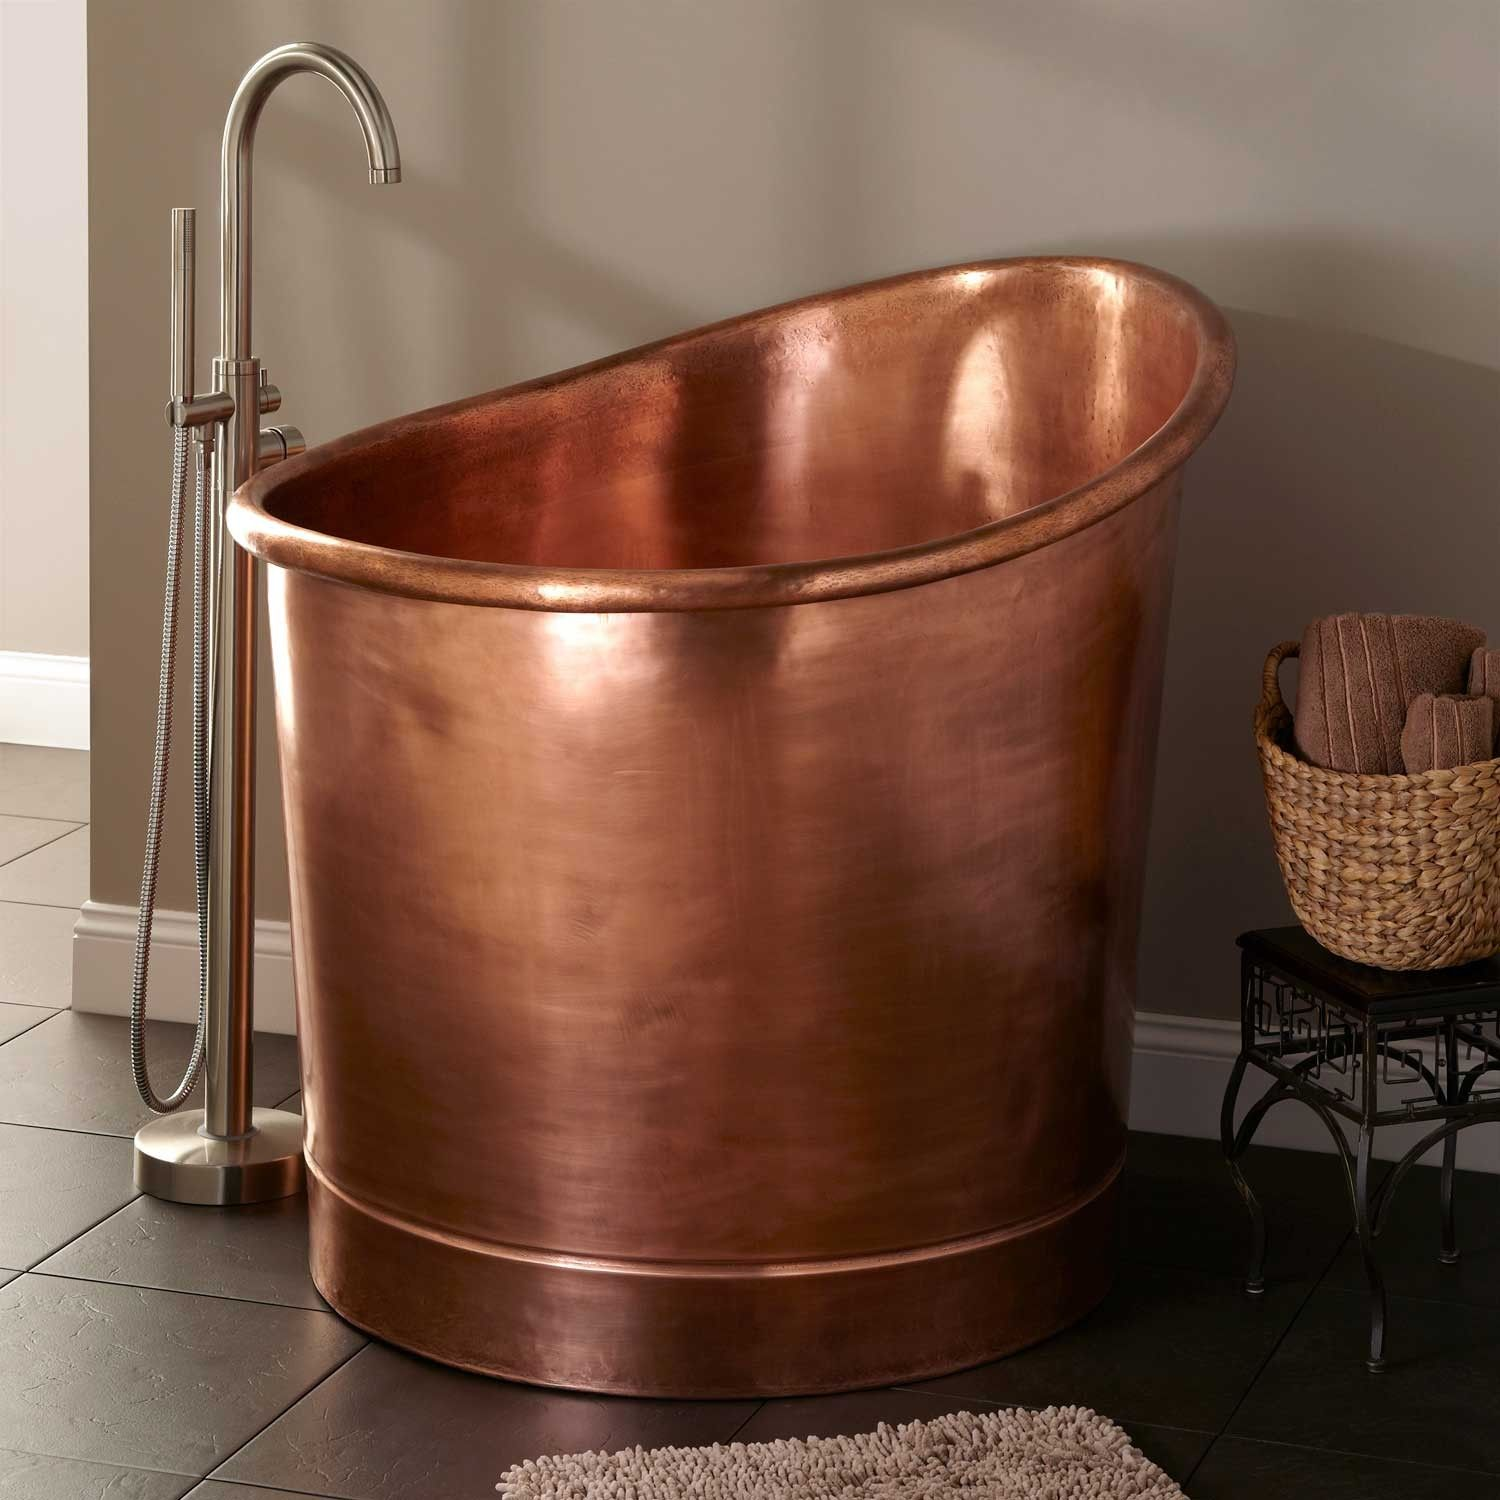 39 Velletri Copper Japanese Soaking Tub Bathtubs Bathroom